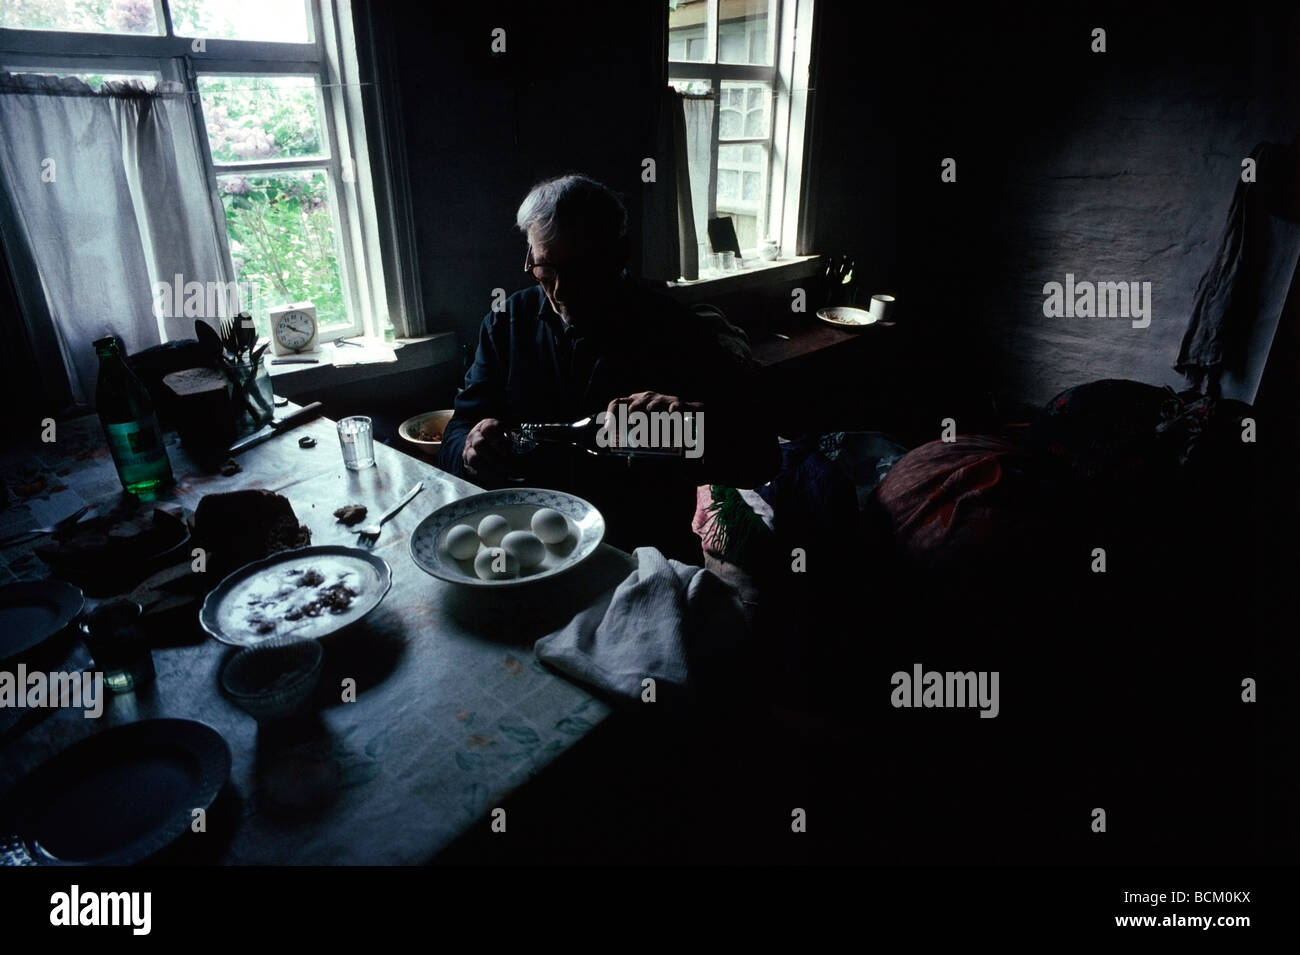 Ivan Greeb pours a glass of Vodka as he has a last breakfast in his home in Dorogin near Chernobyl station, Ukraine. - Stock Image